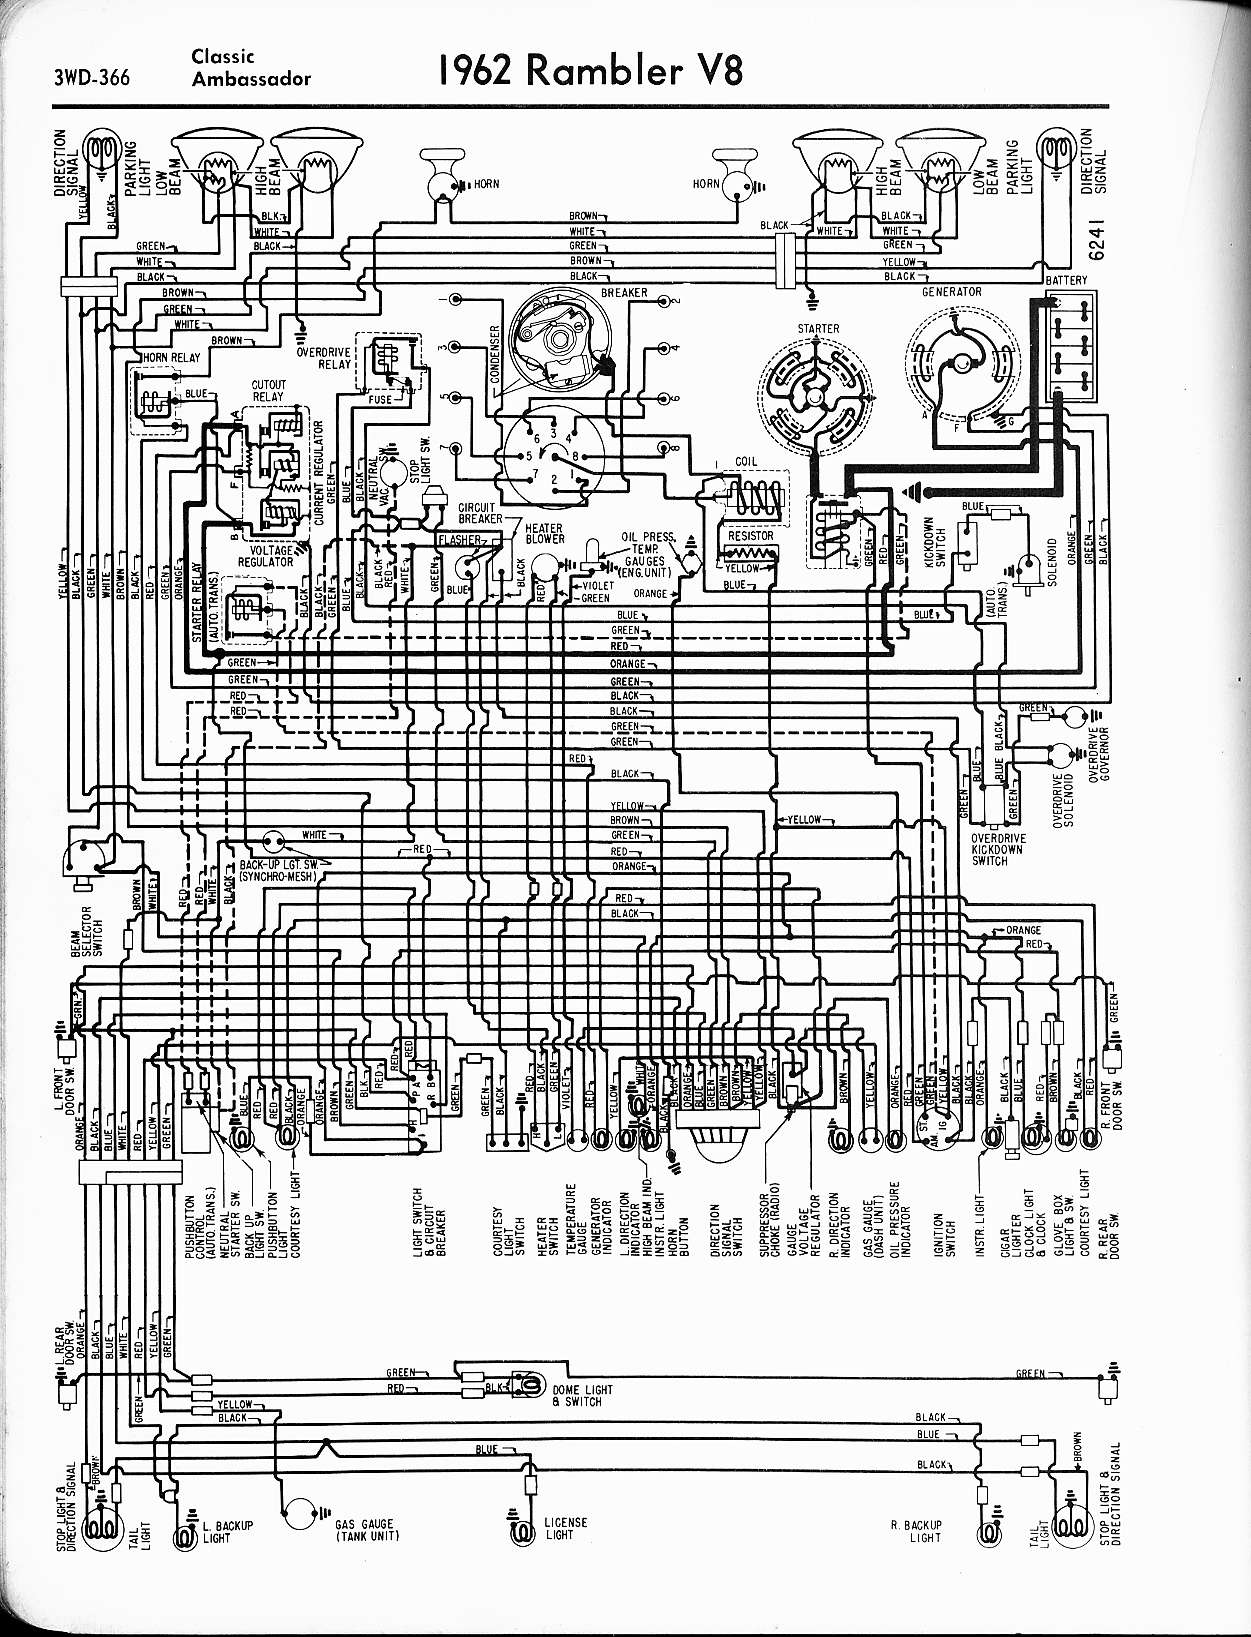 hight resolution of amc 360 wiring diagram wiring library amc 304 engine diagram 1962 rambler v8 classic ambassador